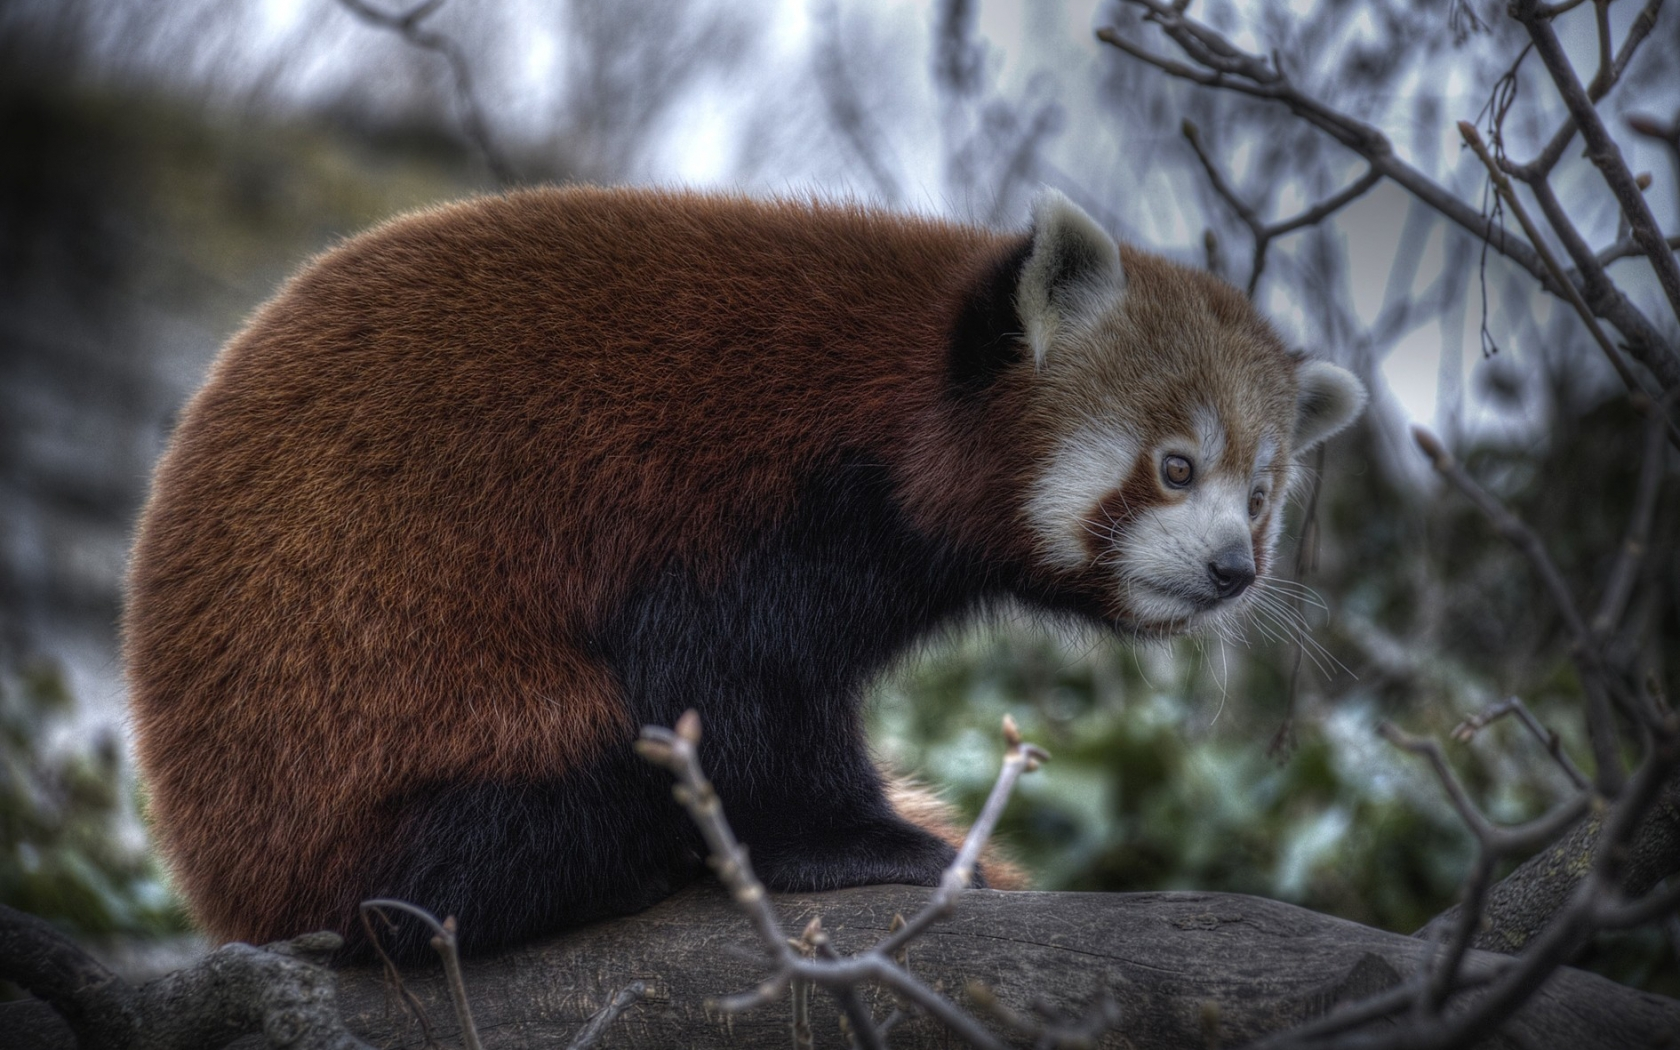 34654 download wallpaper Animals, Pandas screensavers and pictures for free